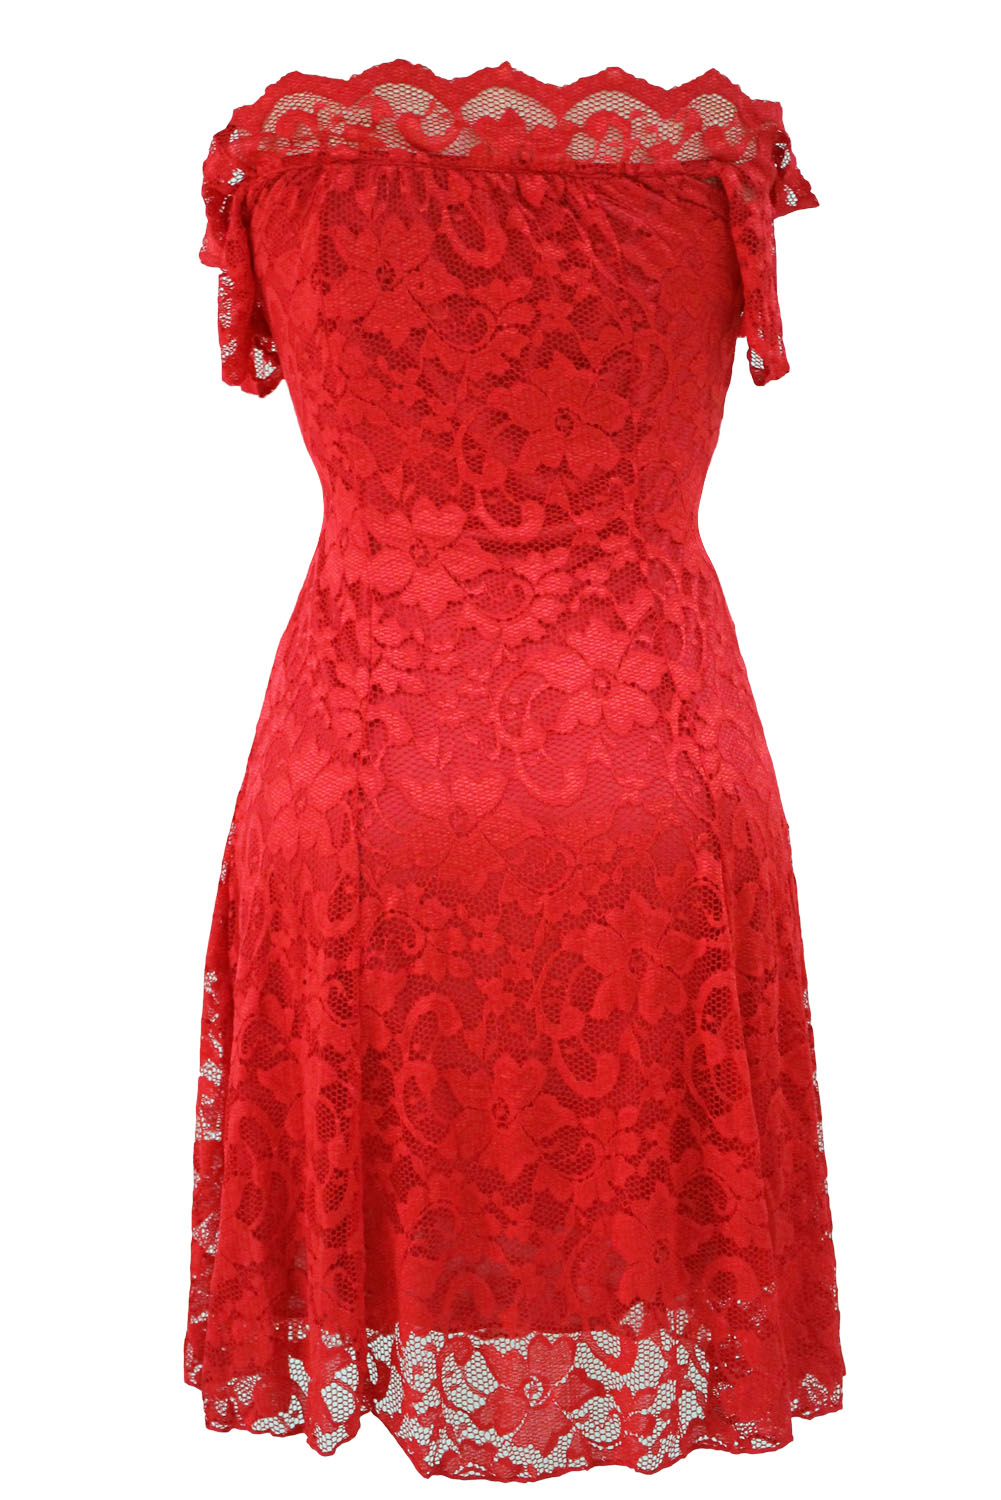 Red Lace Off the Shoulder Skater Dress